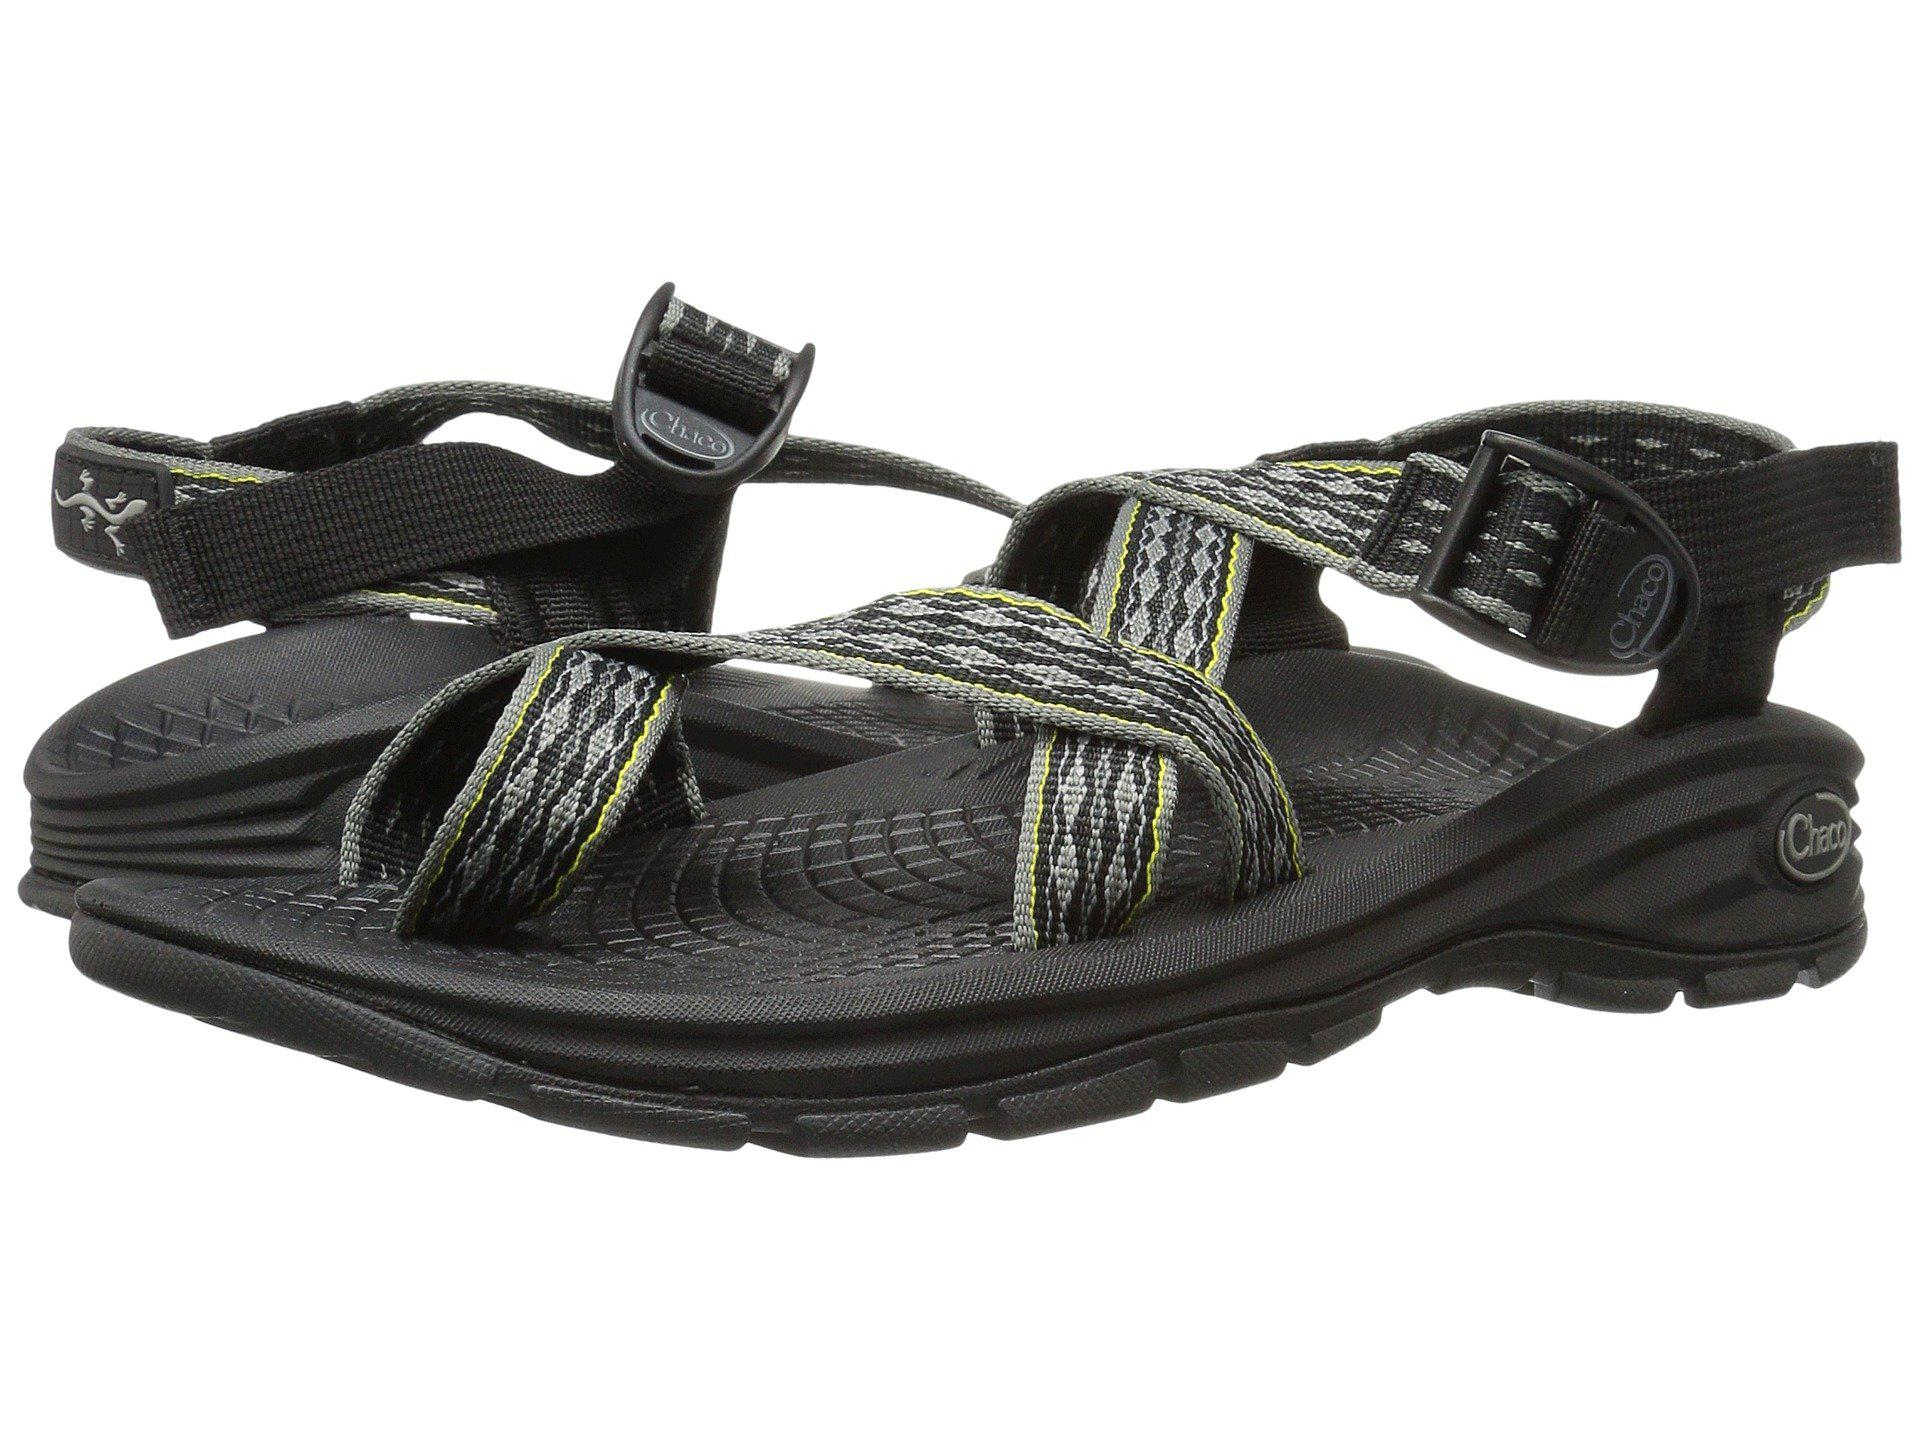 503b96ccf56a Lyst chaco volv for men jpg 1920x1440 Neon chacos